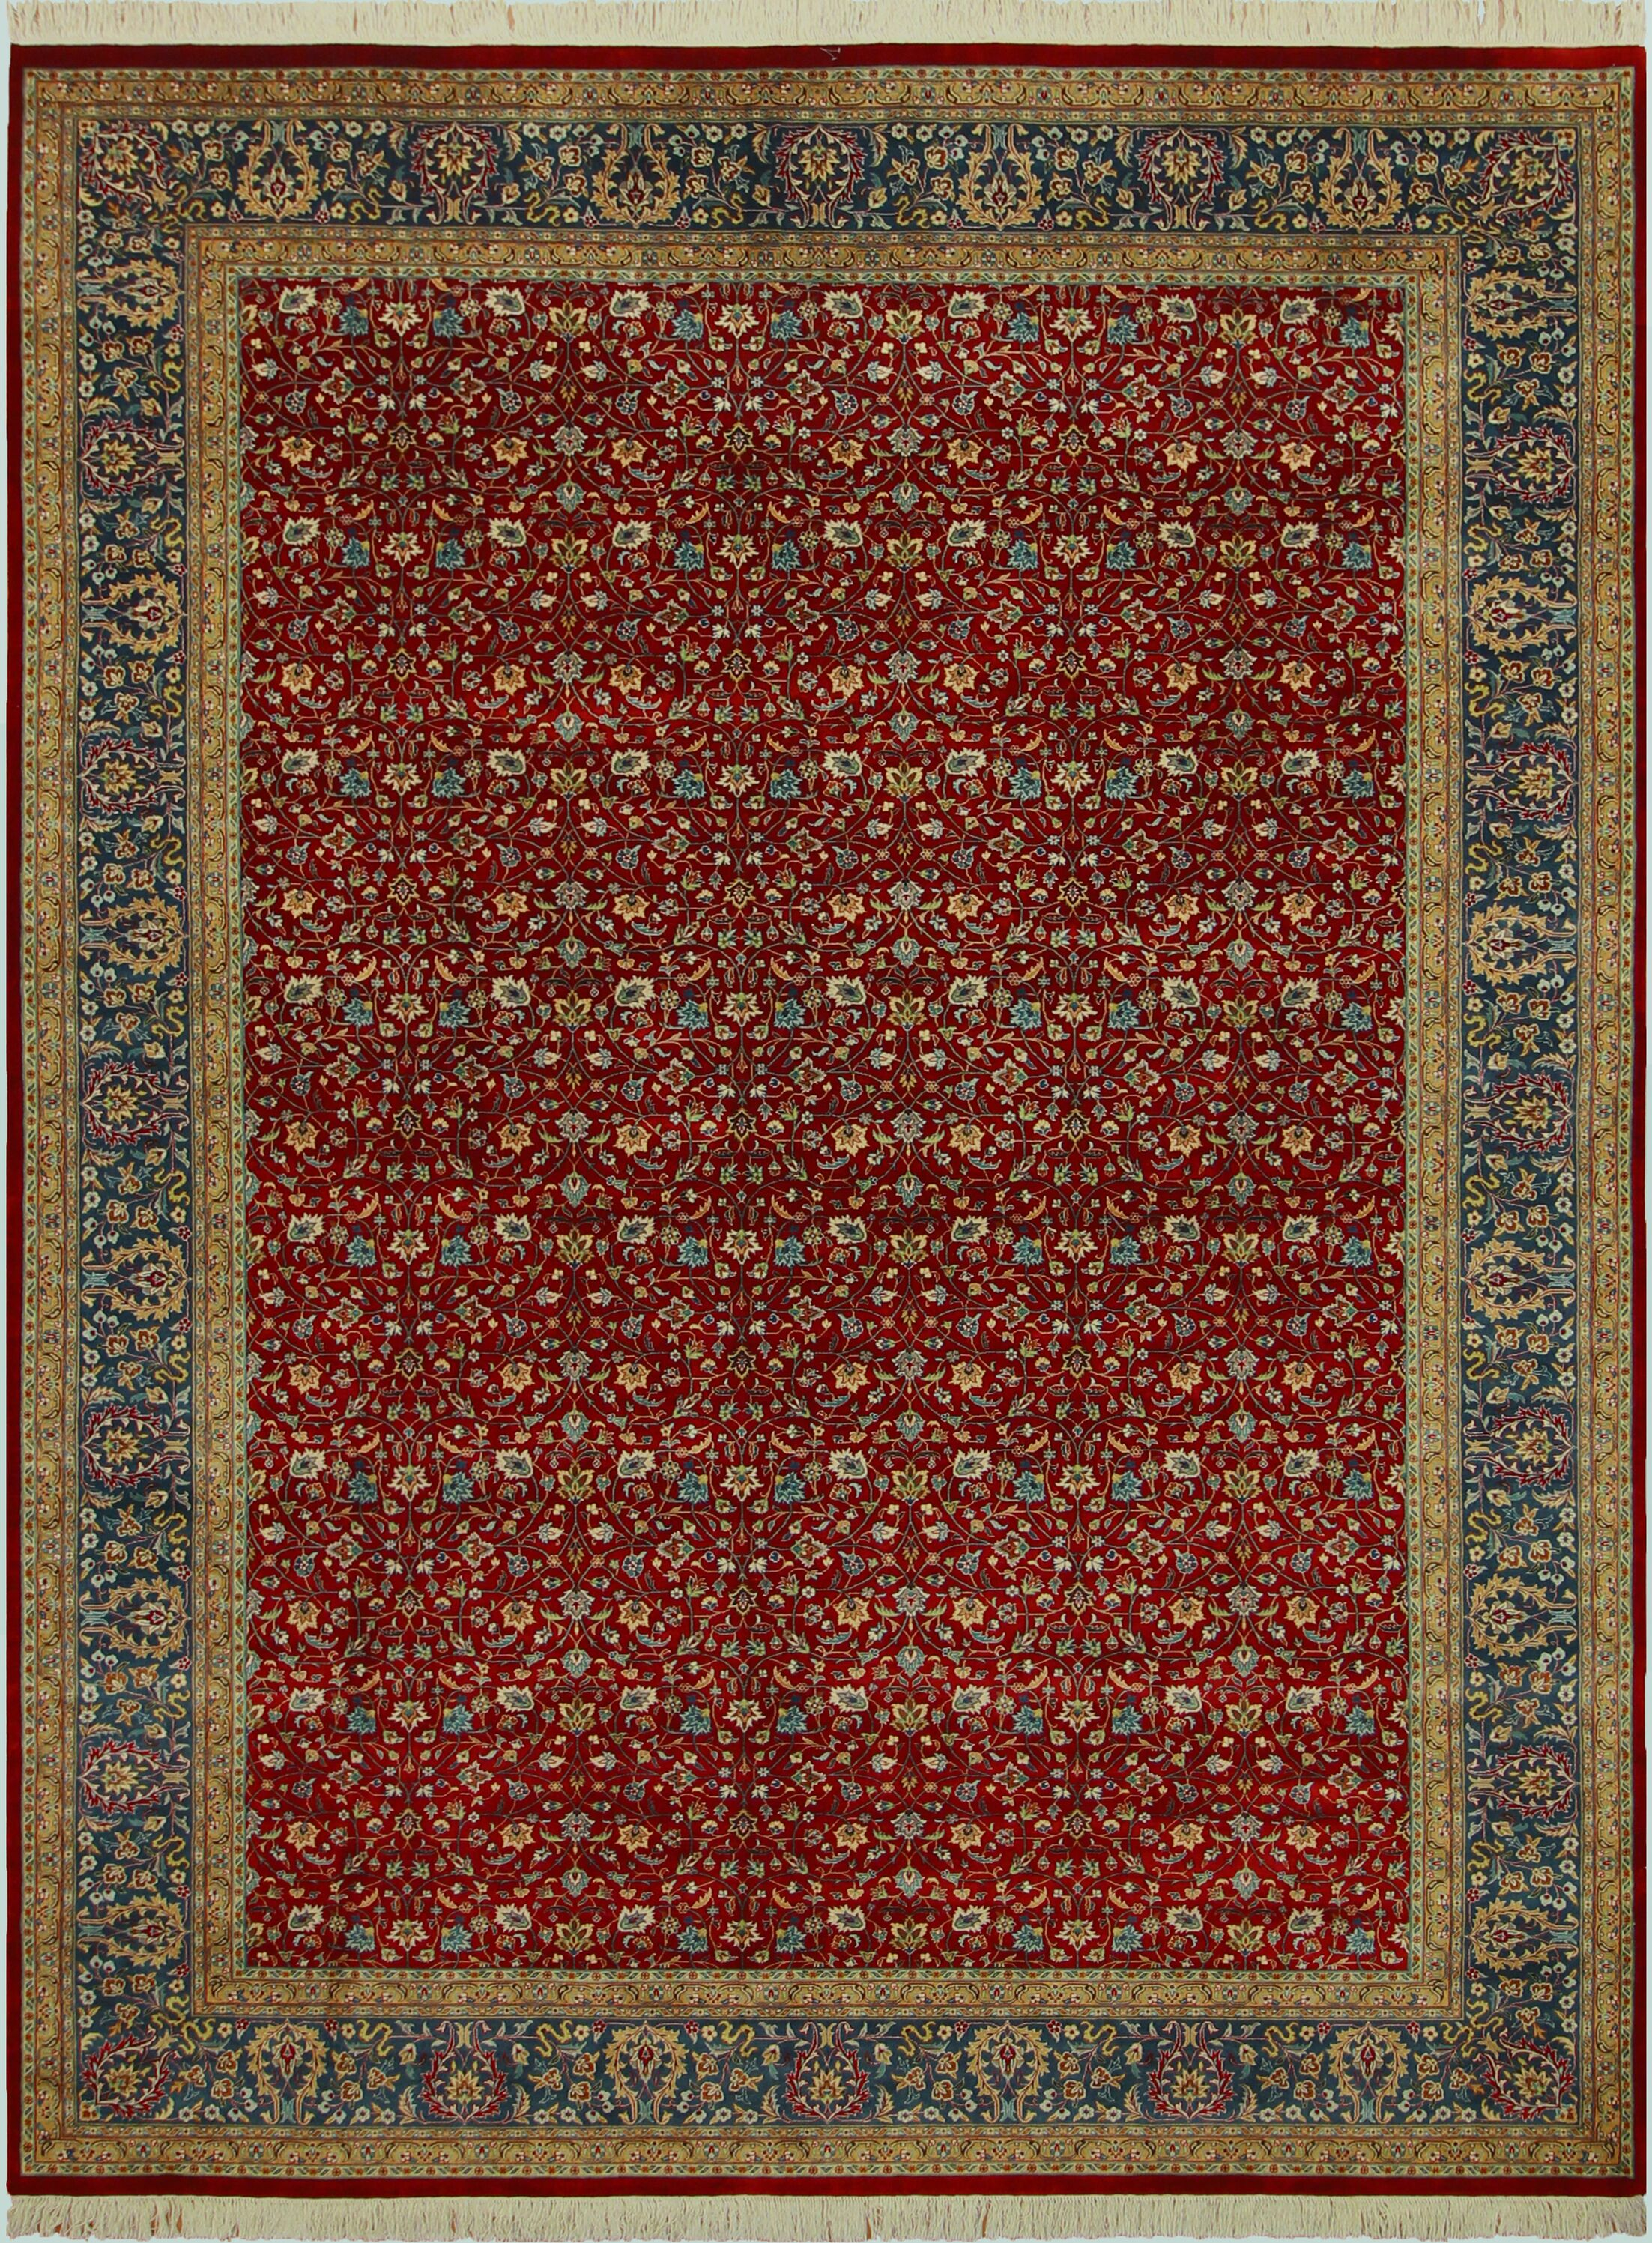 Bellville Persian Hand-Knotted Wool Red/Teal Area Rug